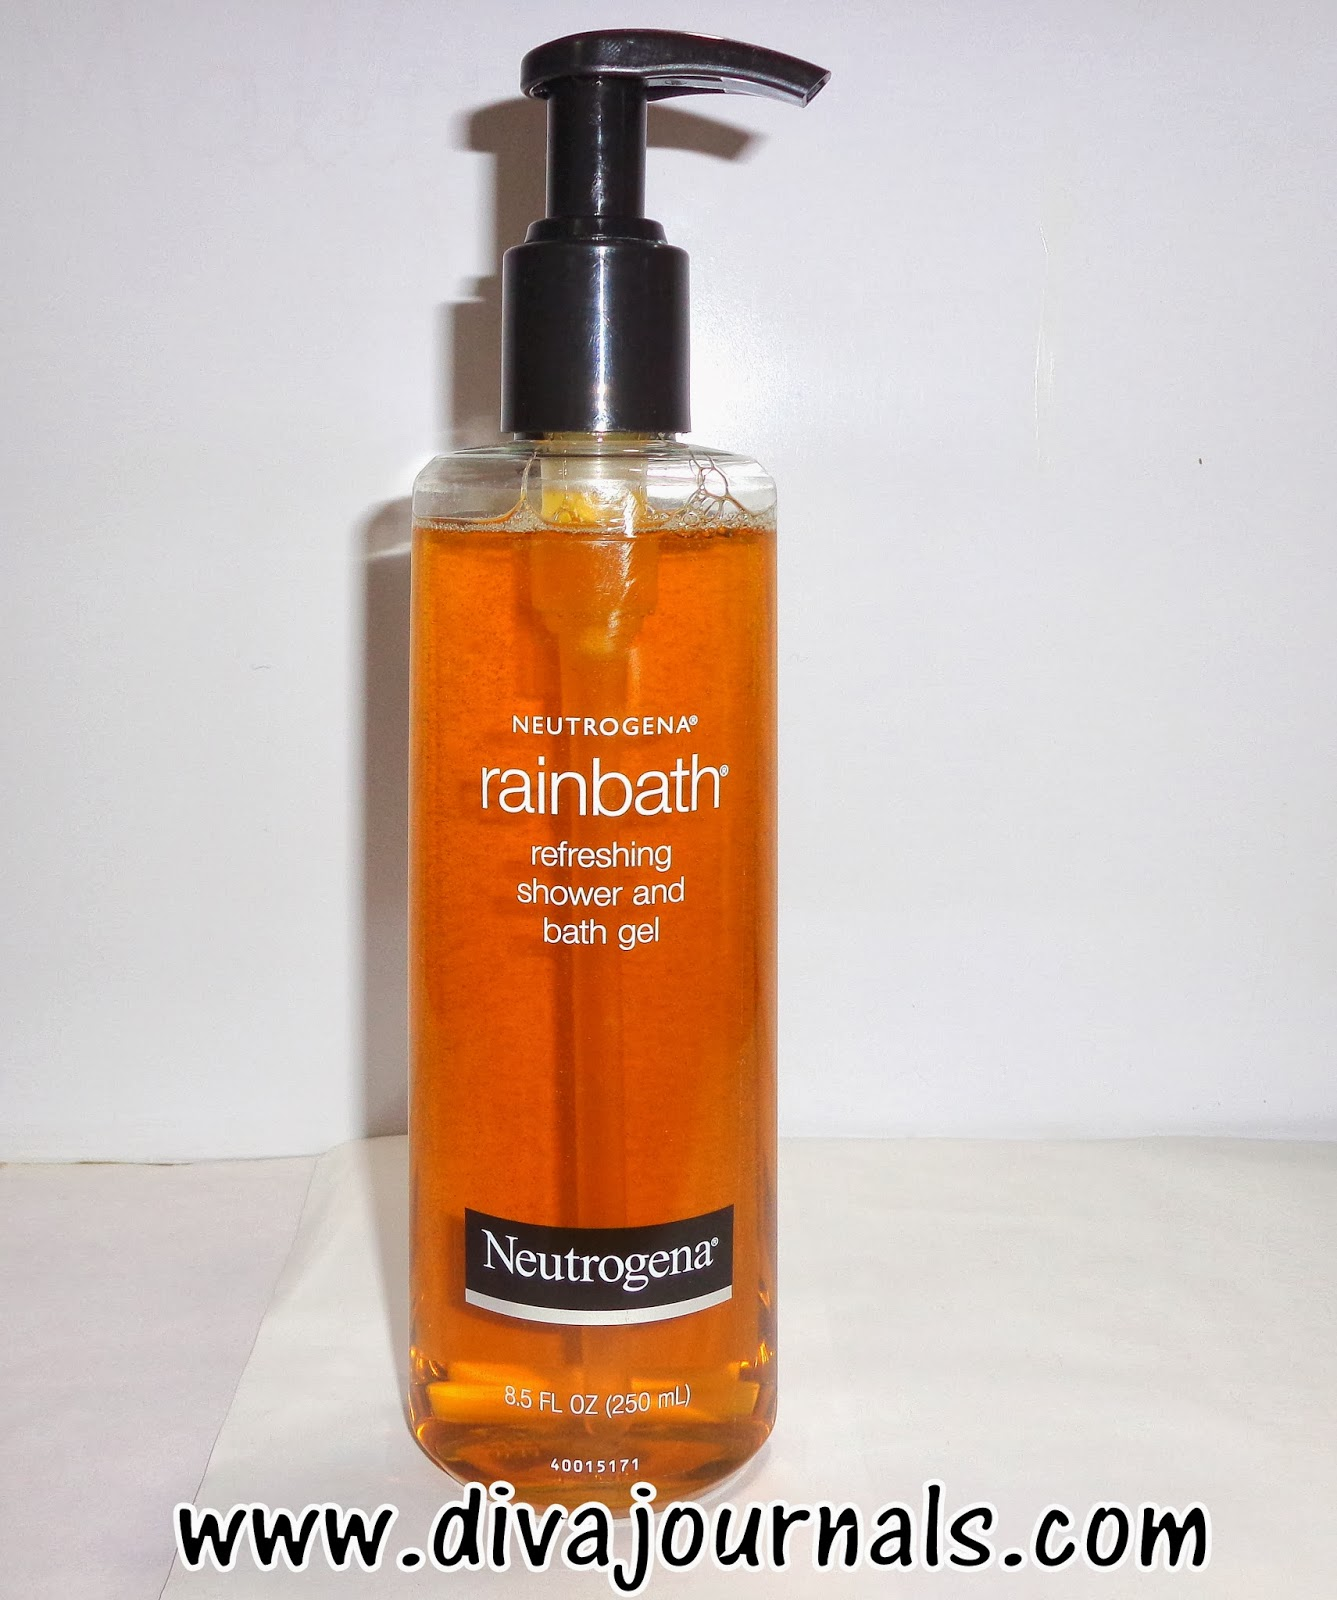 Neutrogena Rainbath Refreshing Shower & Bath Gel Review